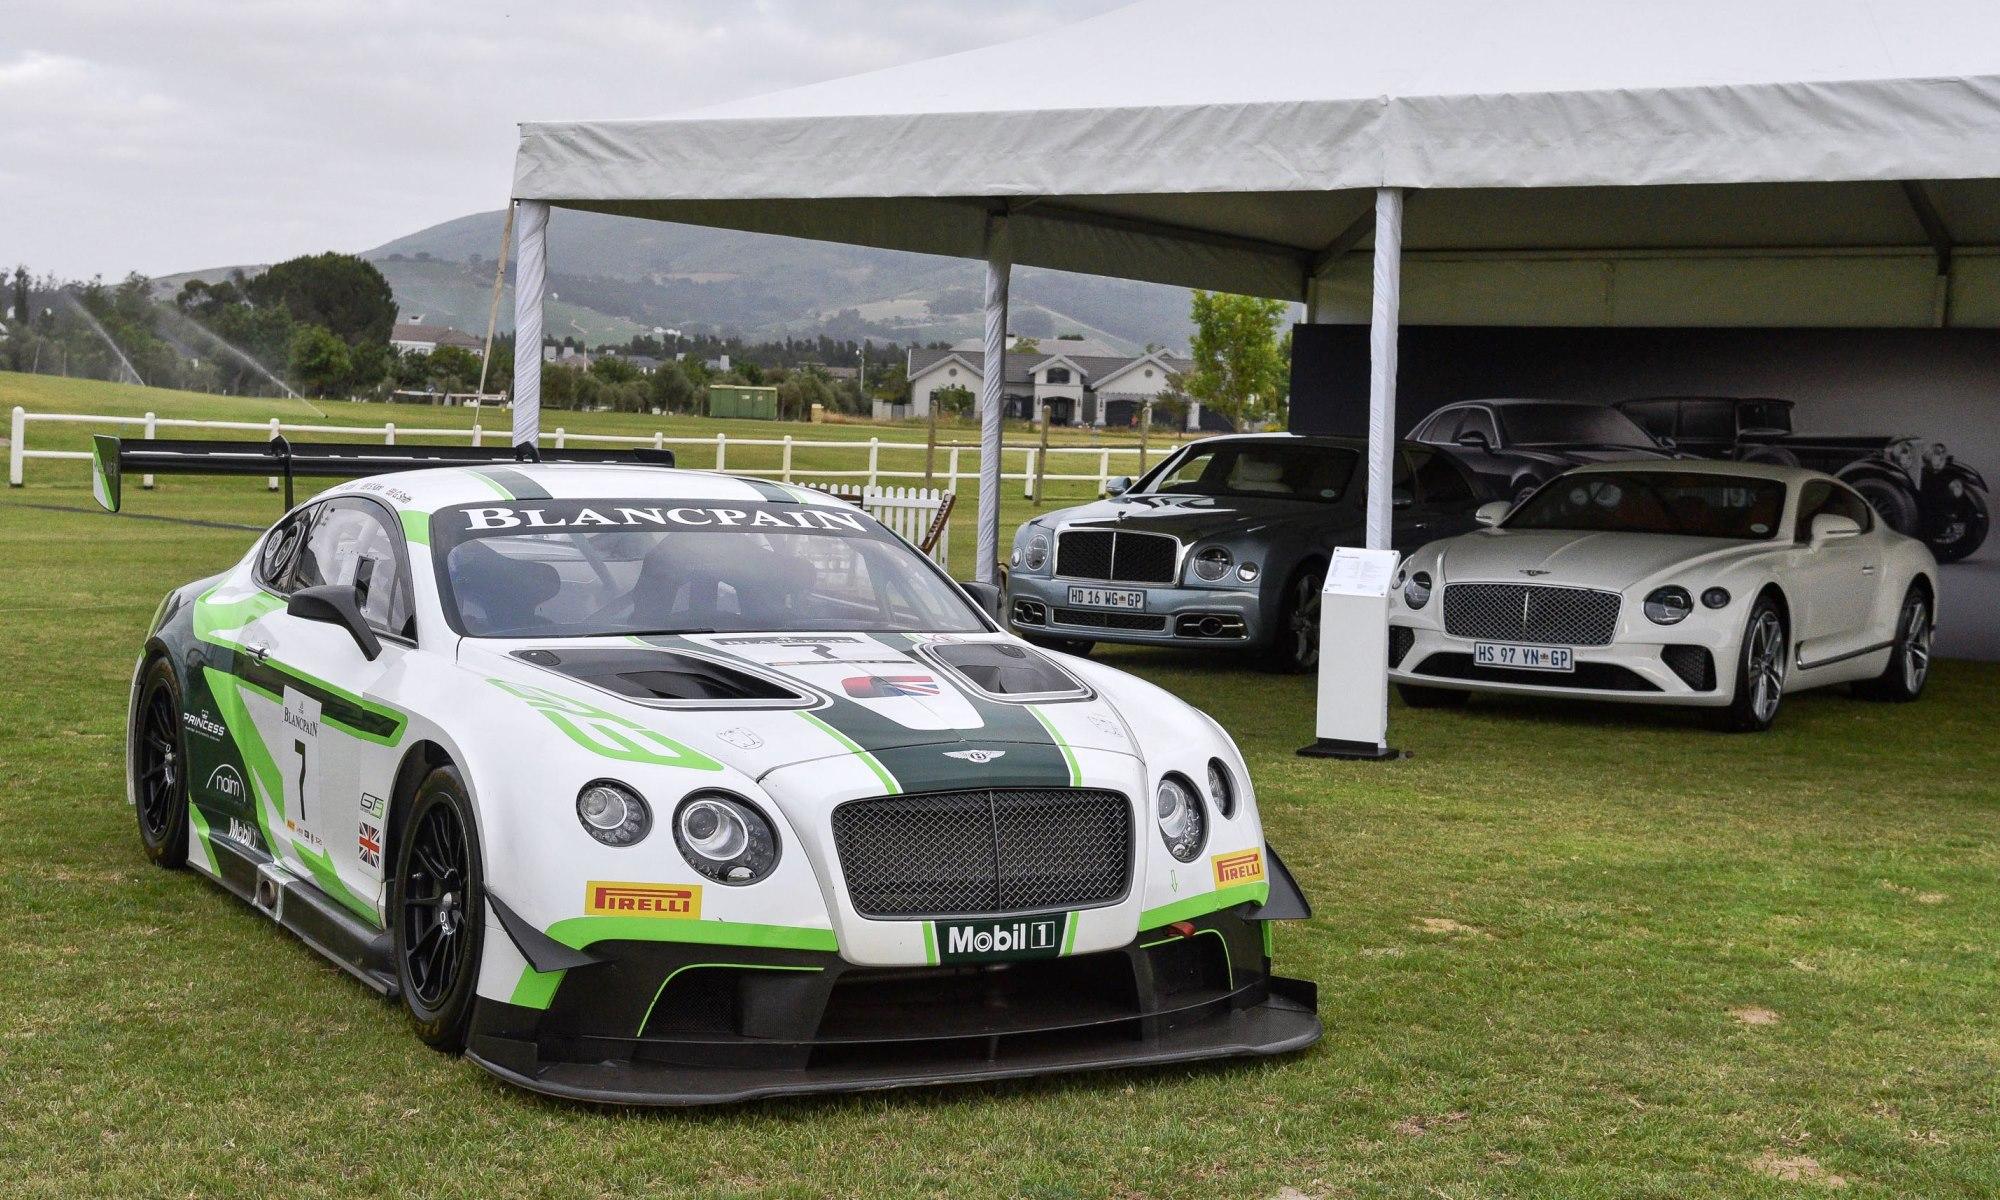 A Bentley Continental GT3 racecar (front) and its roadgoing siblings in the background